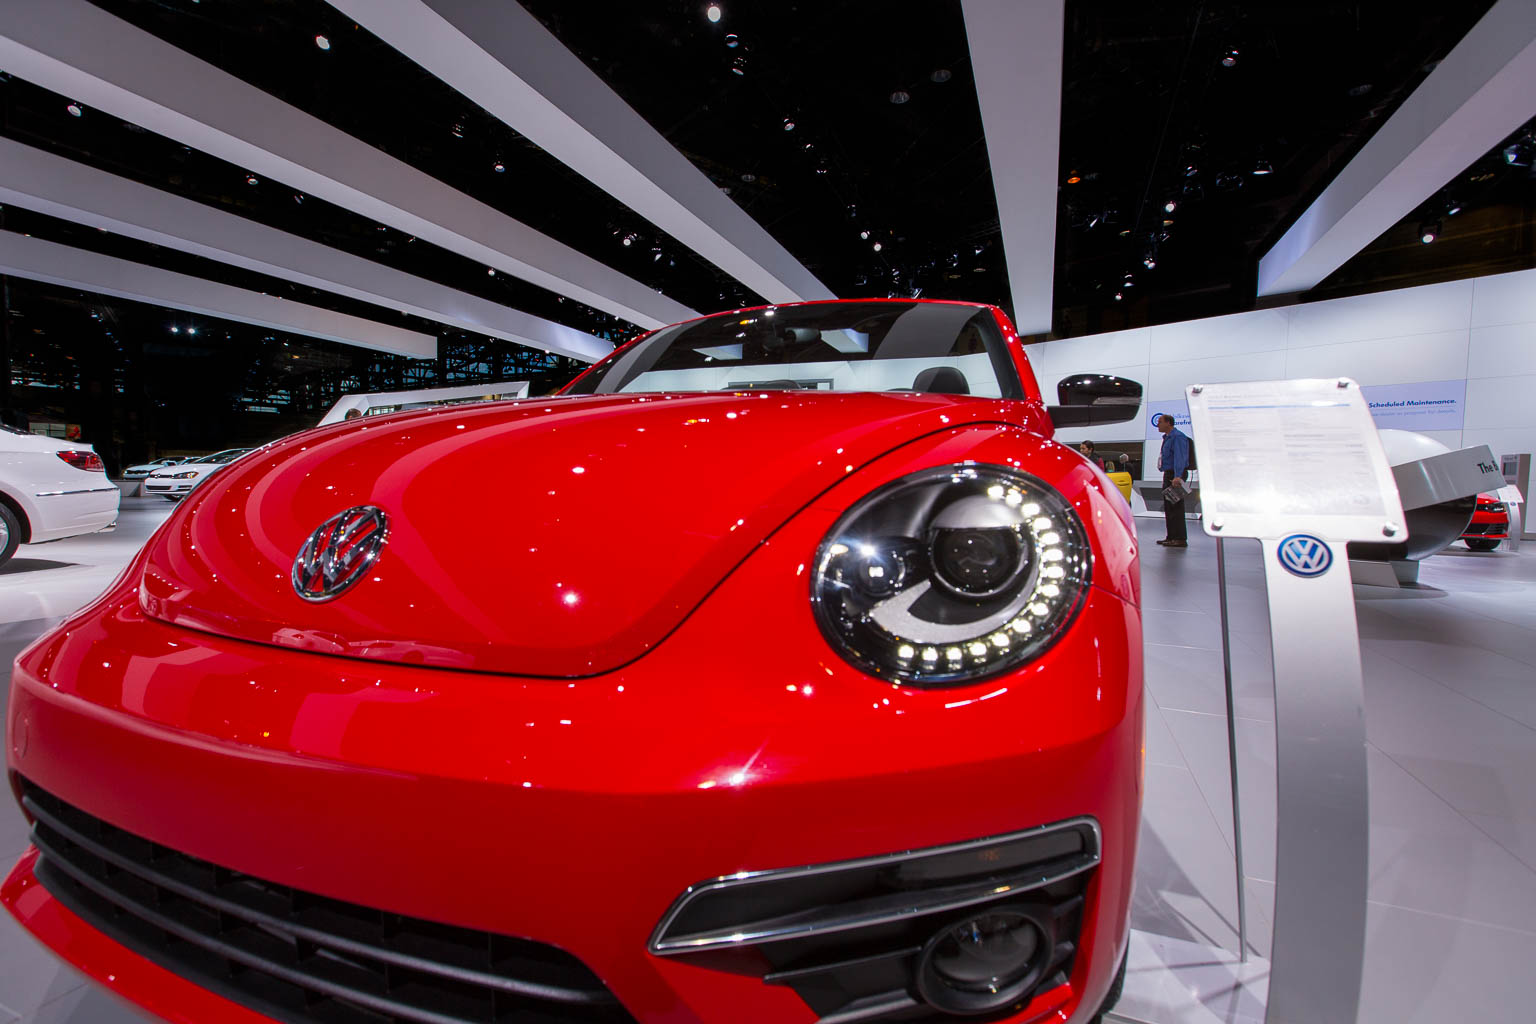 Volkswagen Booth, Chicago Auto Show 2014 - Lighting Designer Tyler Elich